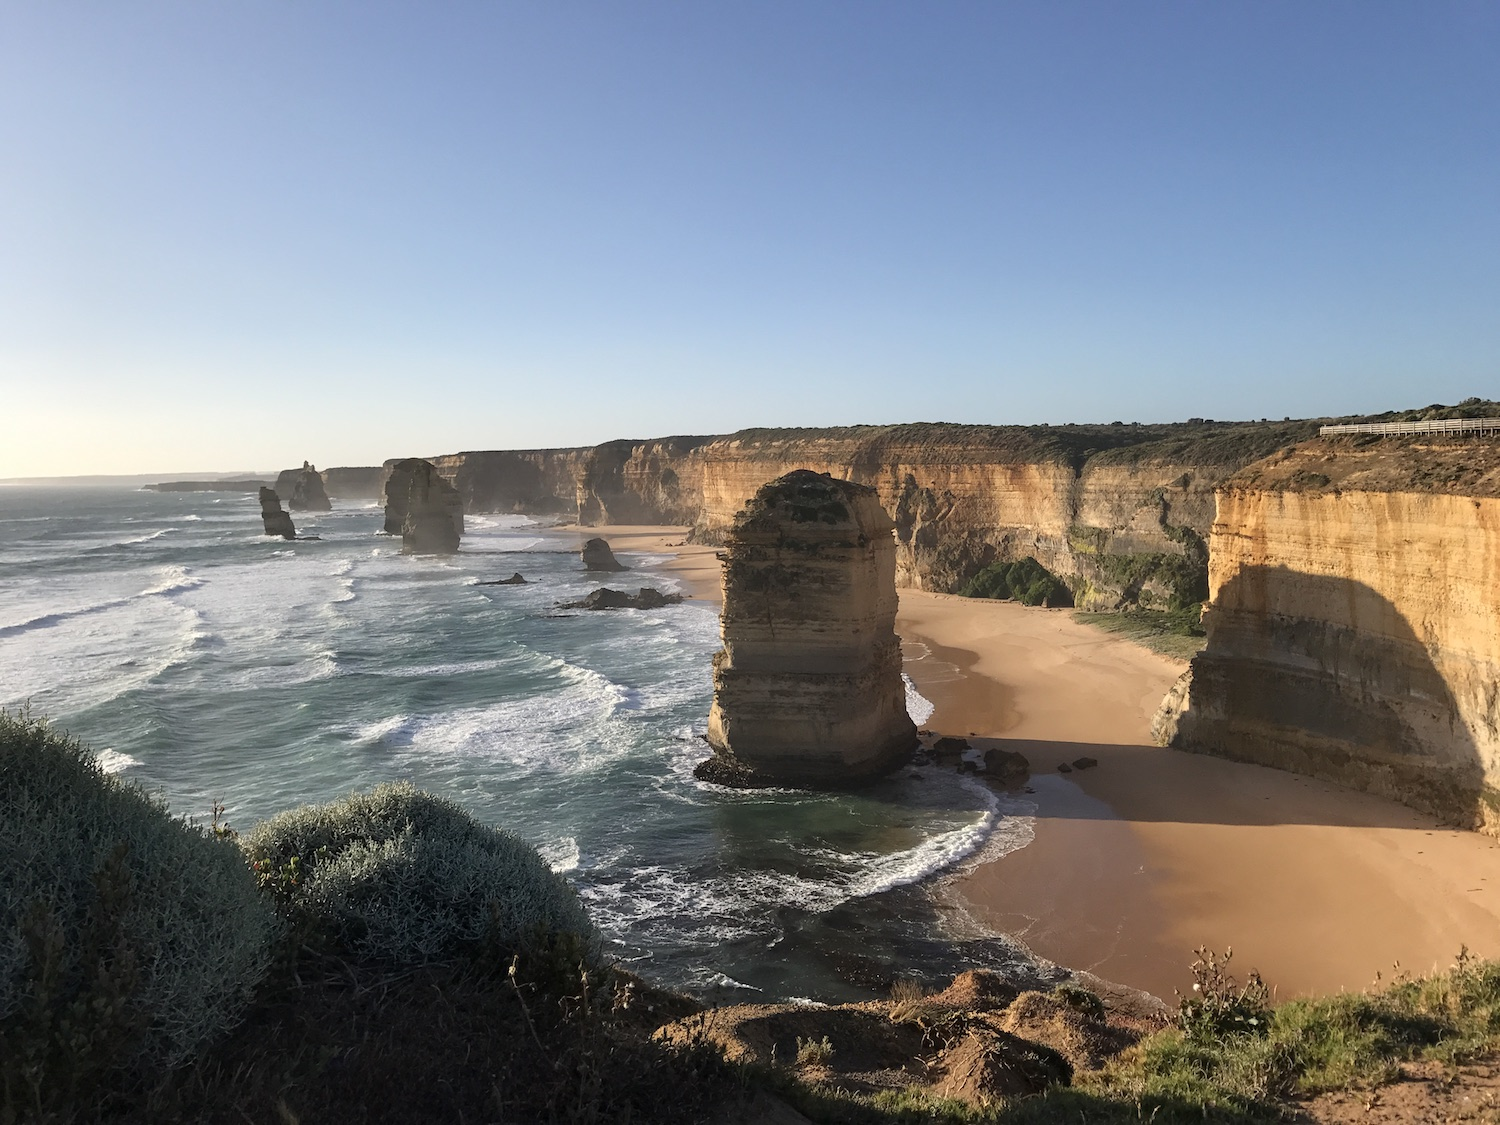 The 12 apostles on the great ocean drive - AMAZING sunset